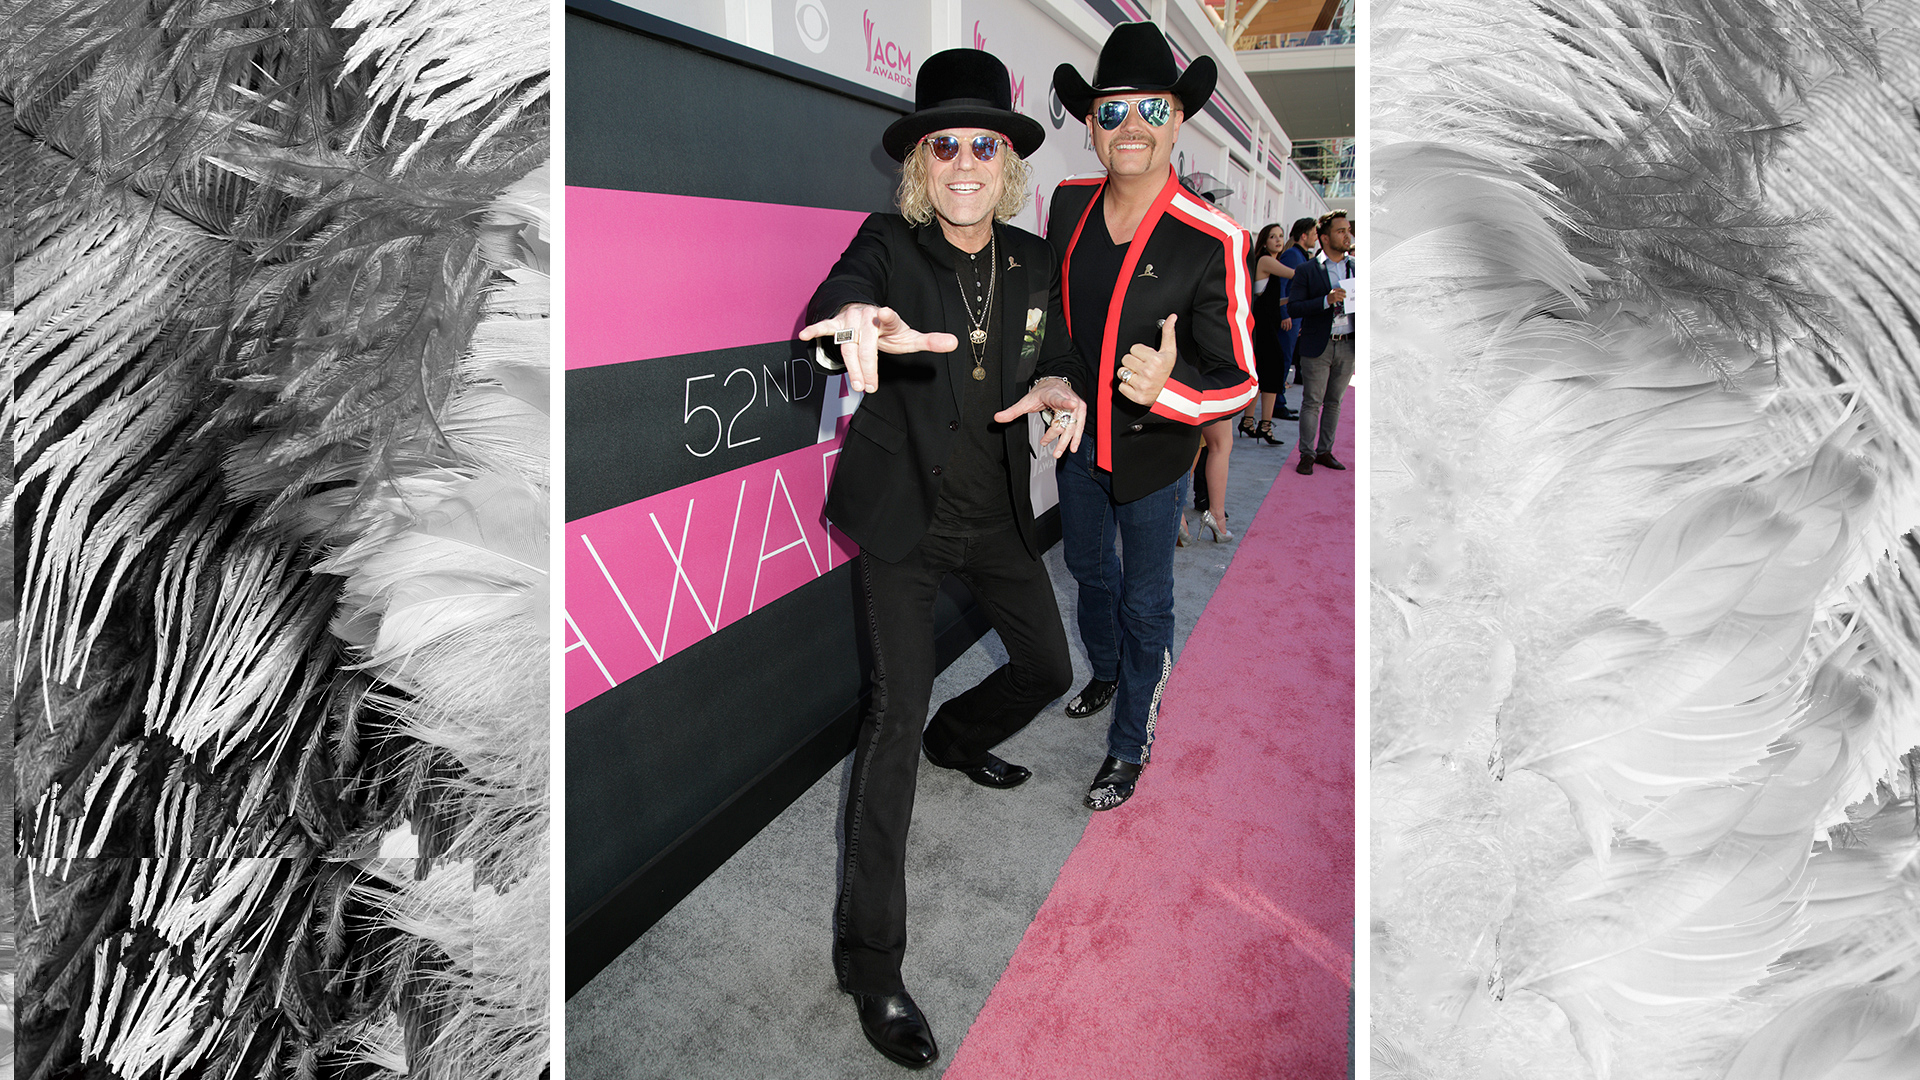 Life's a party when Big & Rich come 'round.